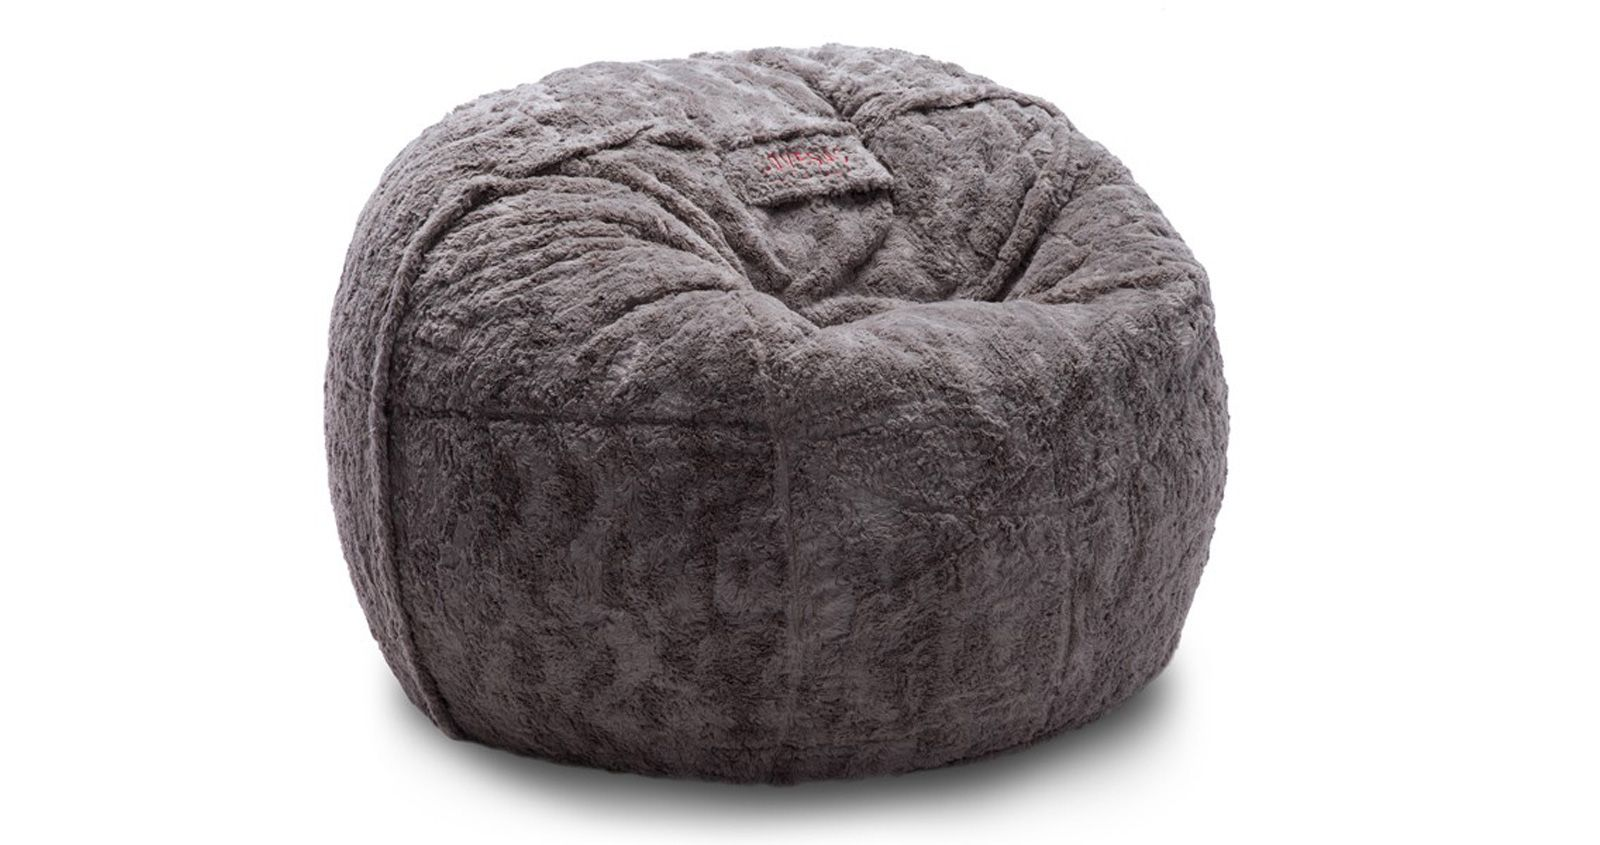 Prime Supersac Love This Pinterest Bean Bag Chair Bean Bag Onthecornerstone Fun Painted Chair Ideas Images Onthecornerstoneorg